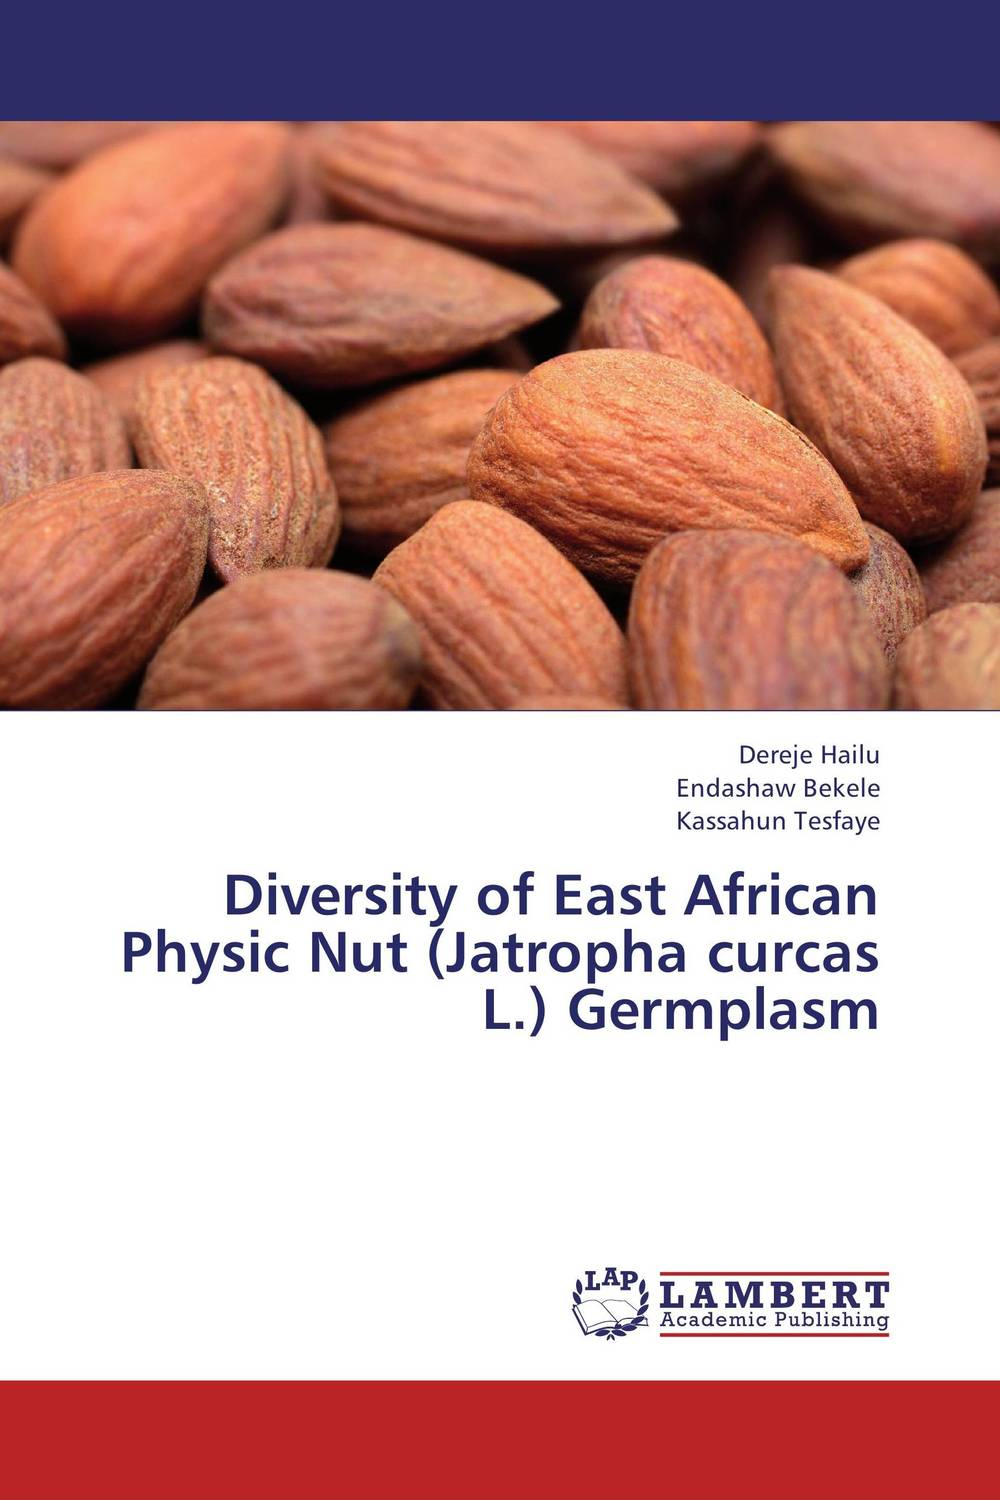 Diversity of East African Physic Nut (Jatropha curcas L.) Germplasm muhammad firdaus sulaiman estimation of carbon footprint in jatropha curcas seed production